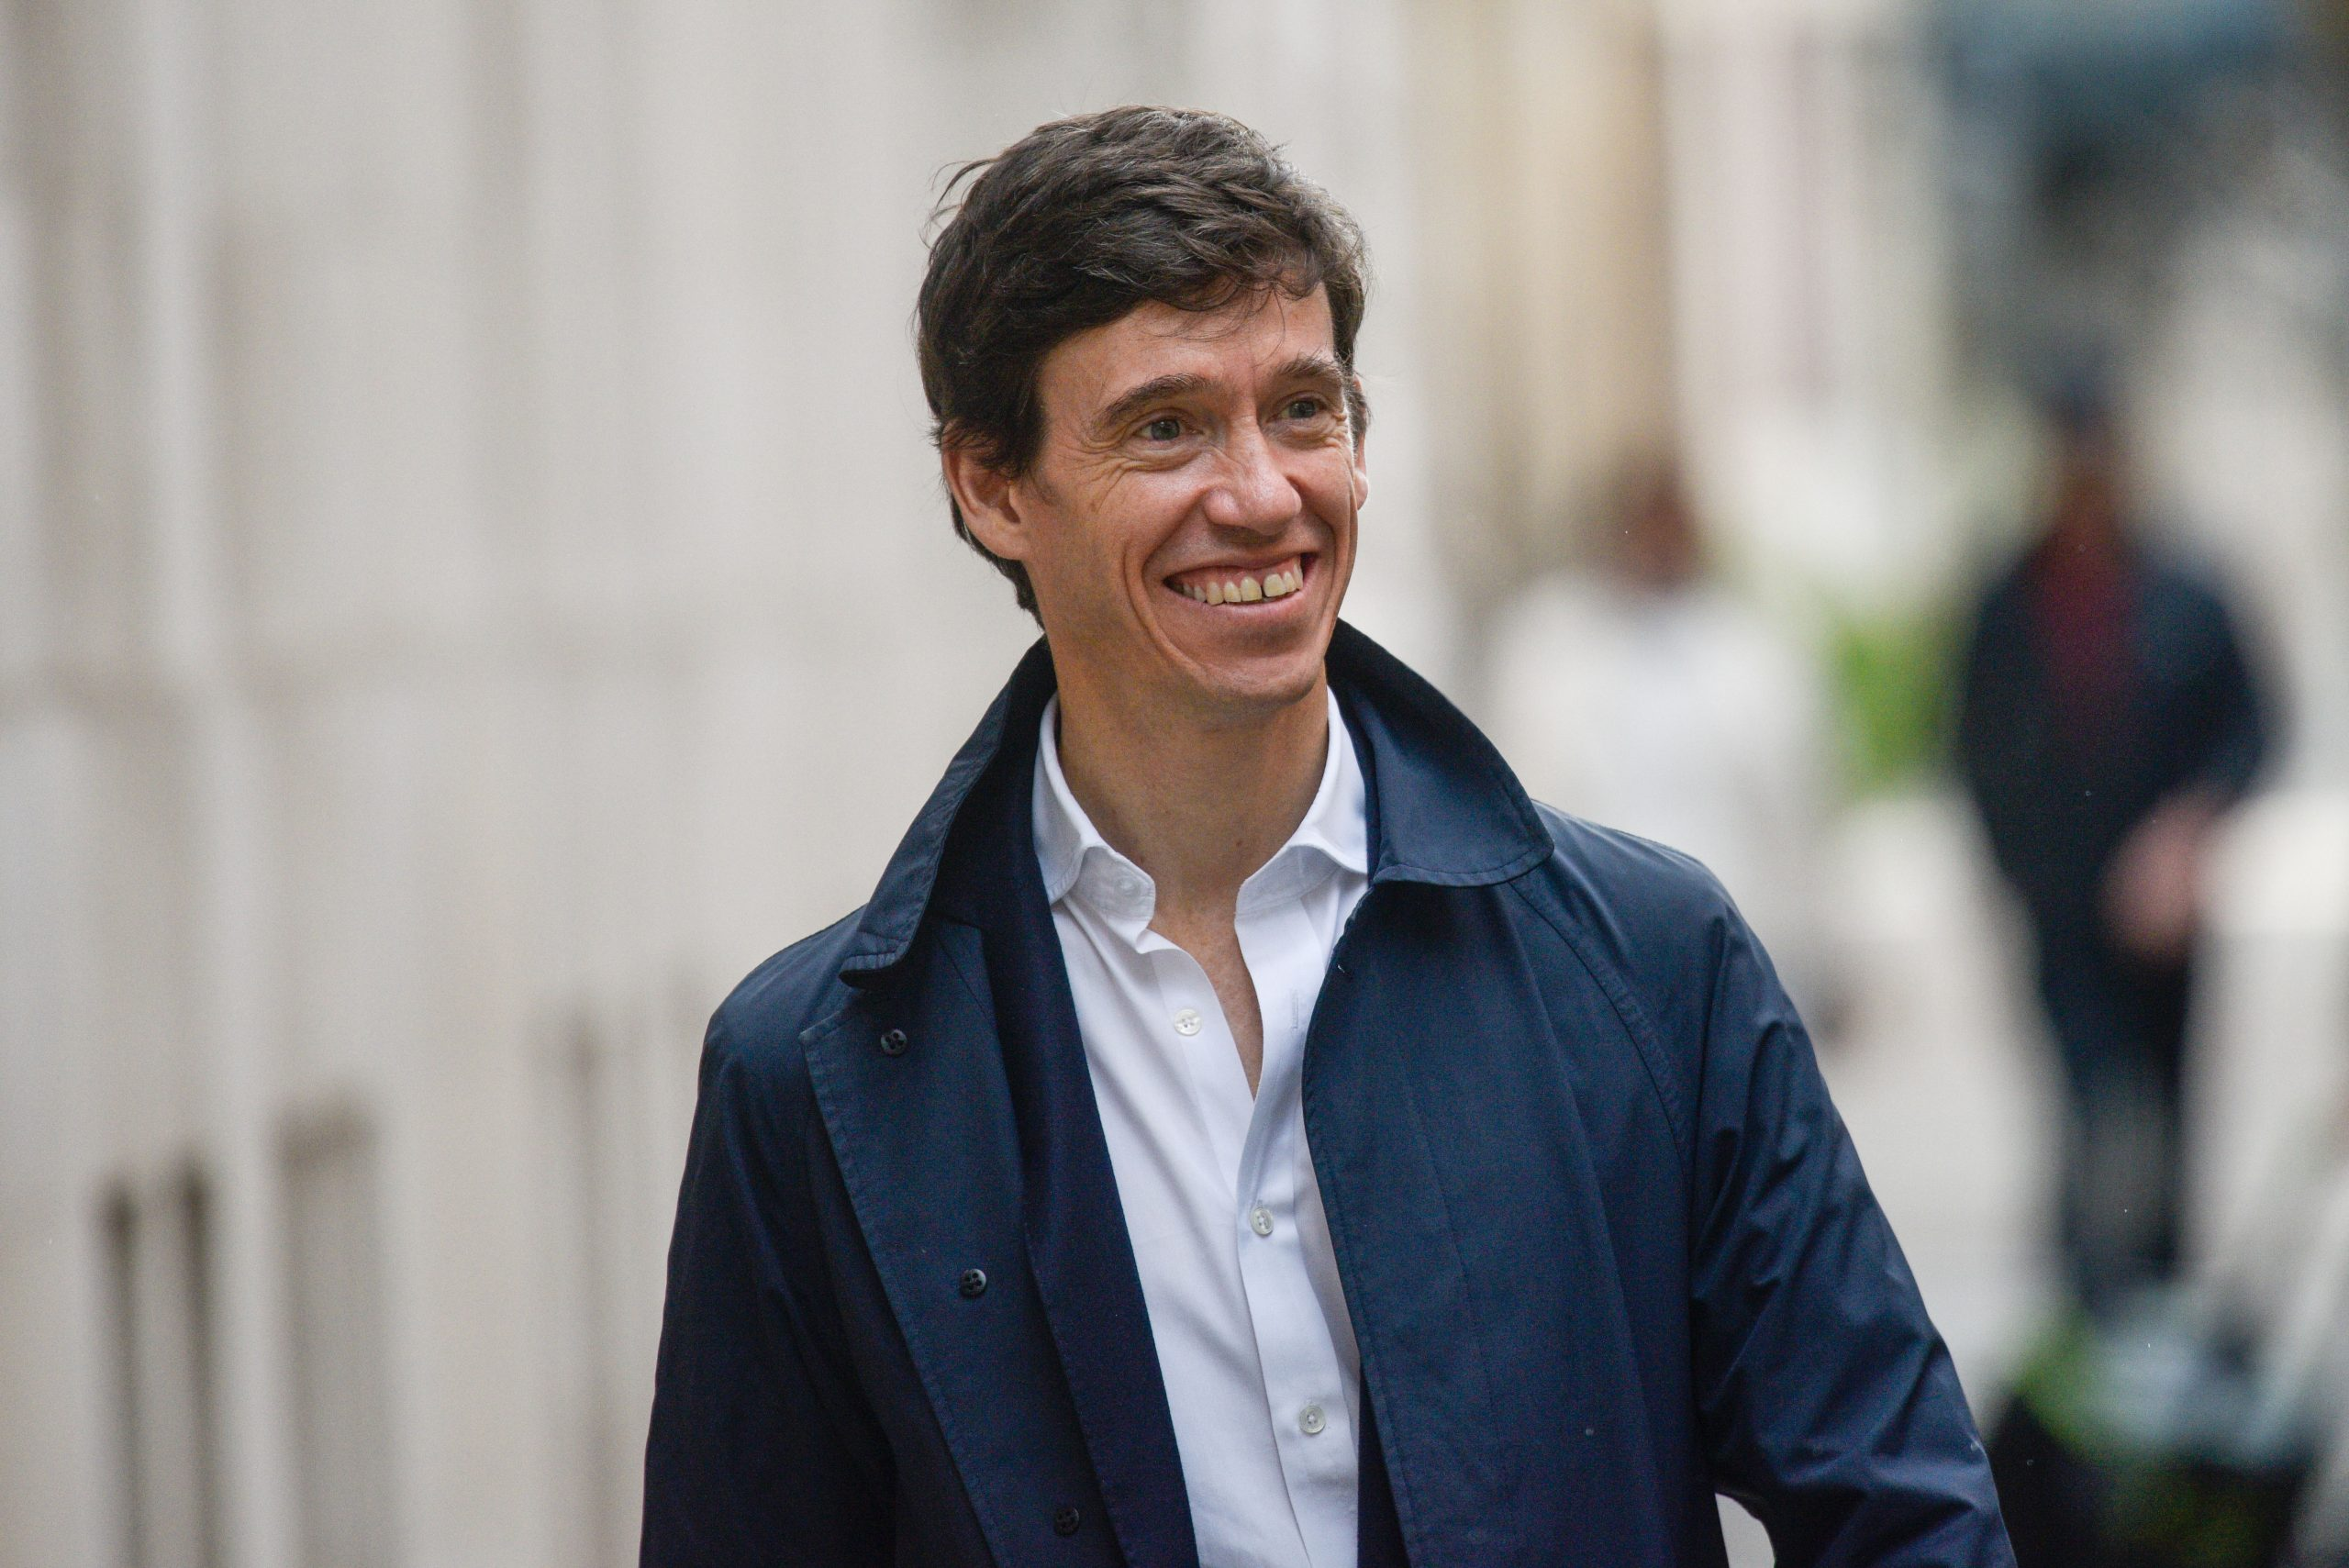 Rory Stewart has said tackling knife crime would be at the heart of his mission, if elected (Photo by Peter Summers/Getty Images)